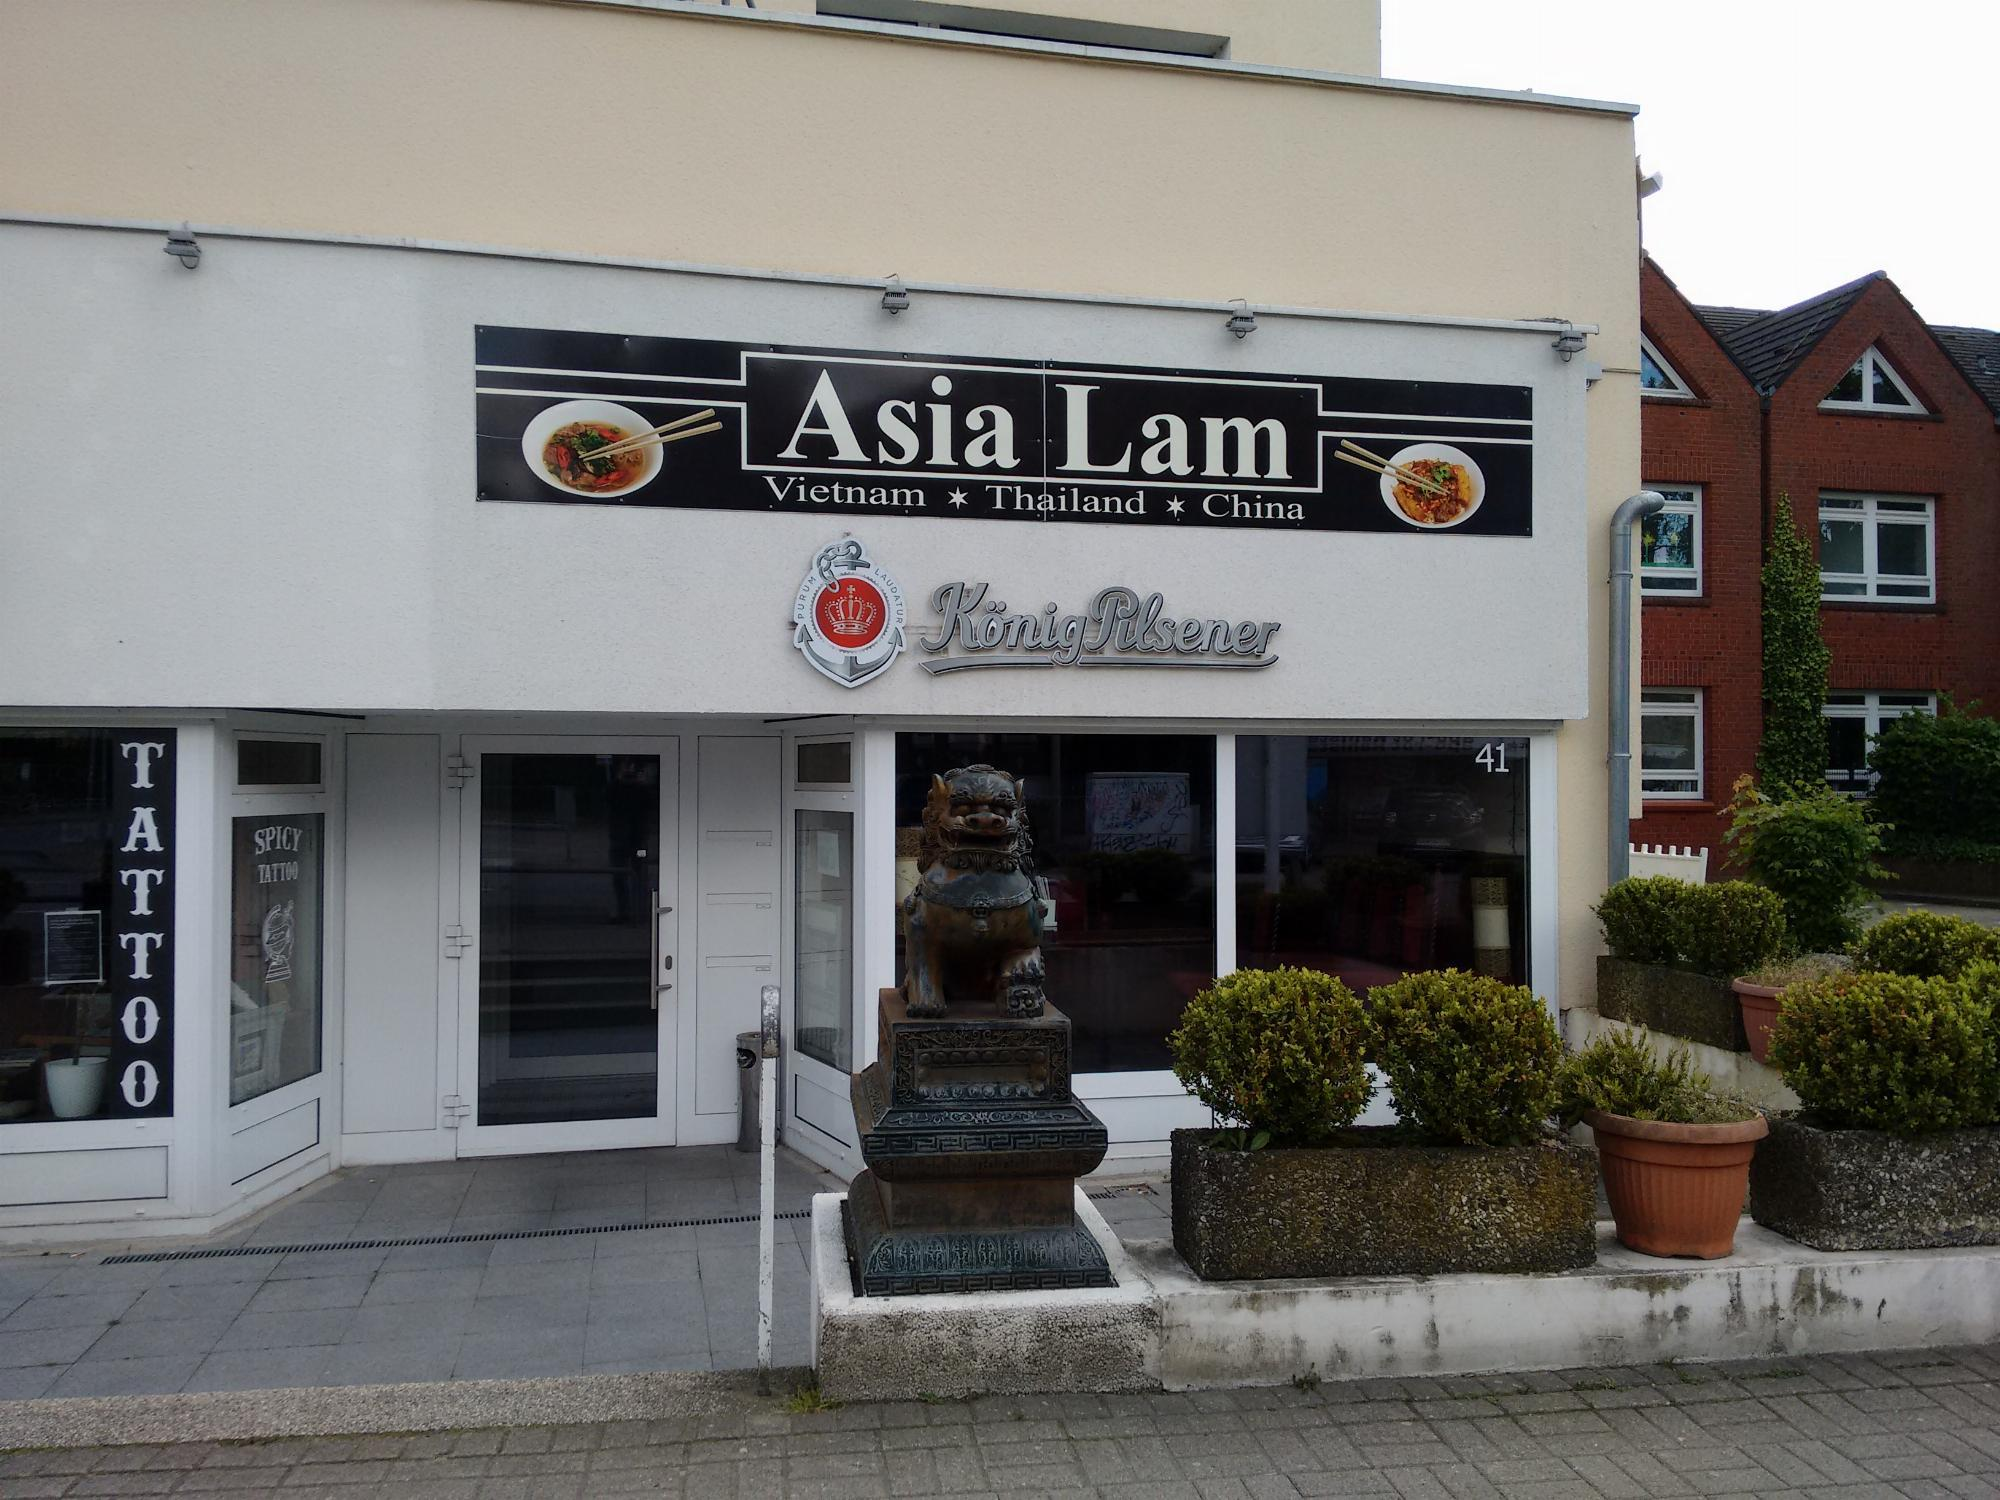 Asia Lam in Rahlstedt